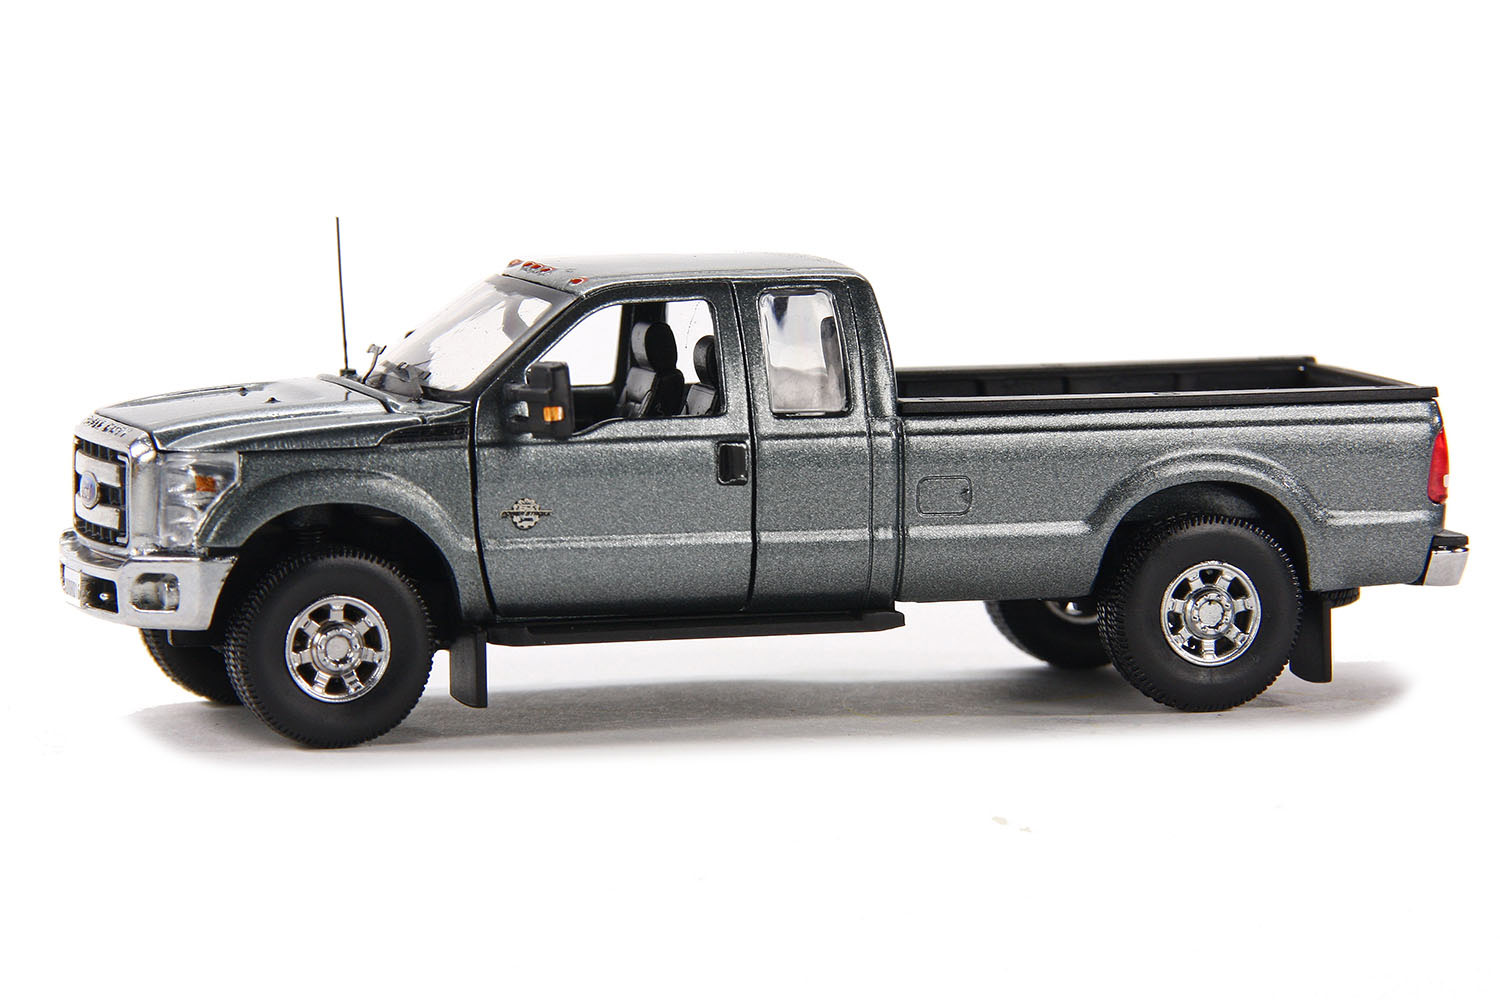 spiel modellkist 39 l shop ford pick up f250 xlt 8 39 bett grau online kaufen. Black Bedroom Furniture Sets. Home Design Ideas